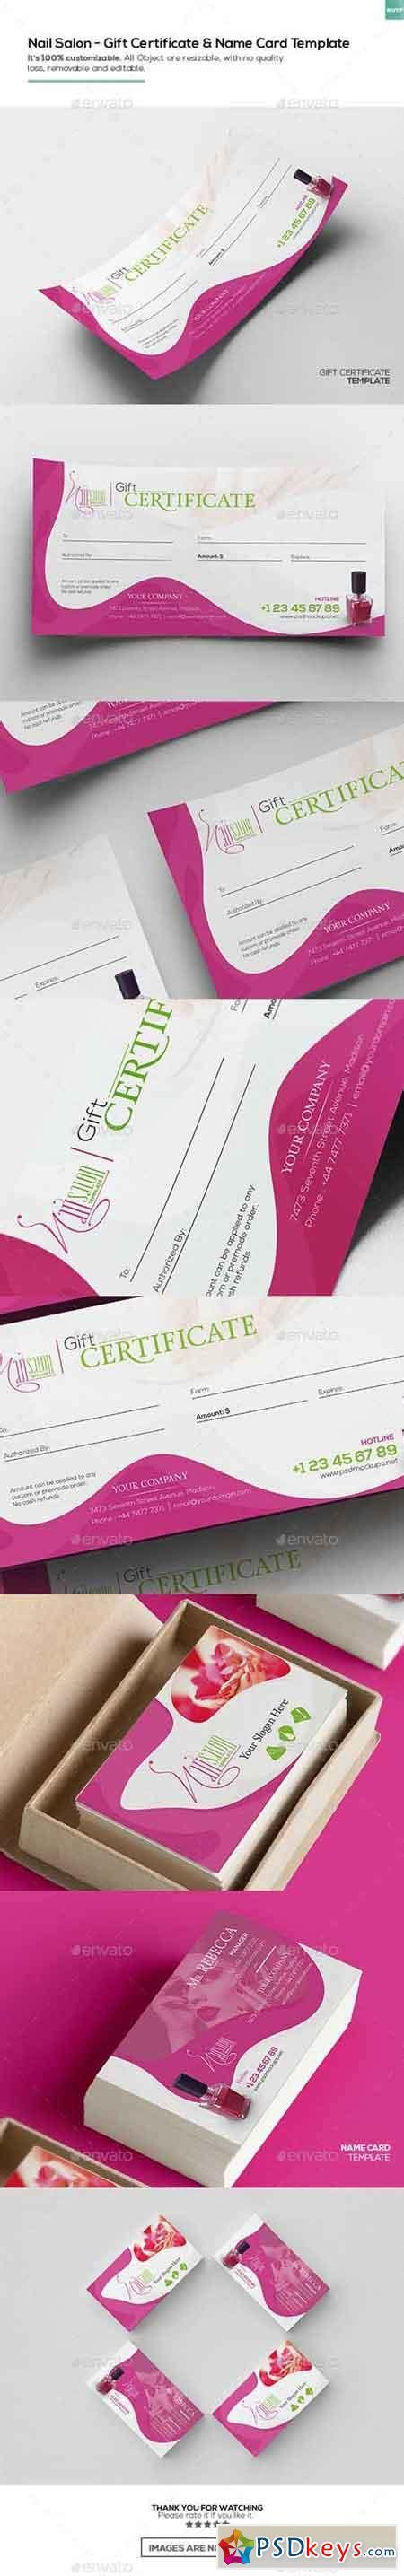 nail salon business card template free nail salon gift certificate and business card template